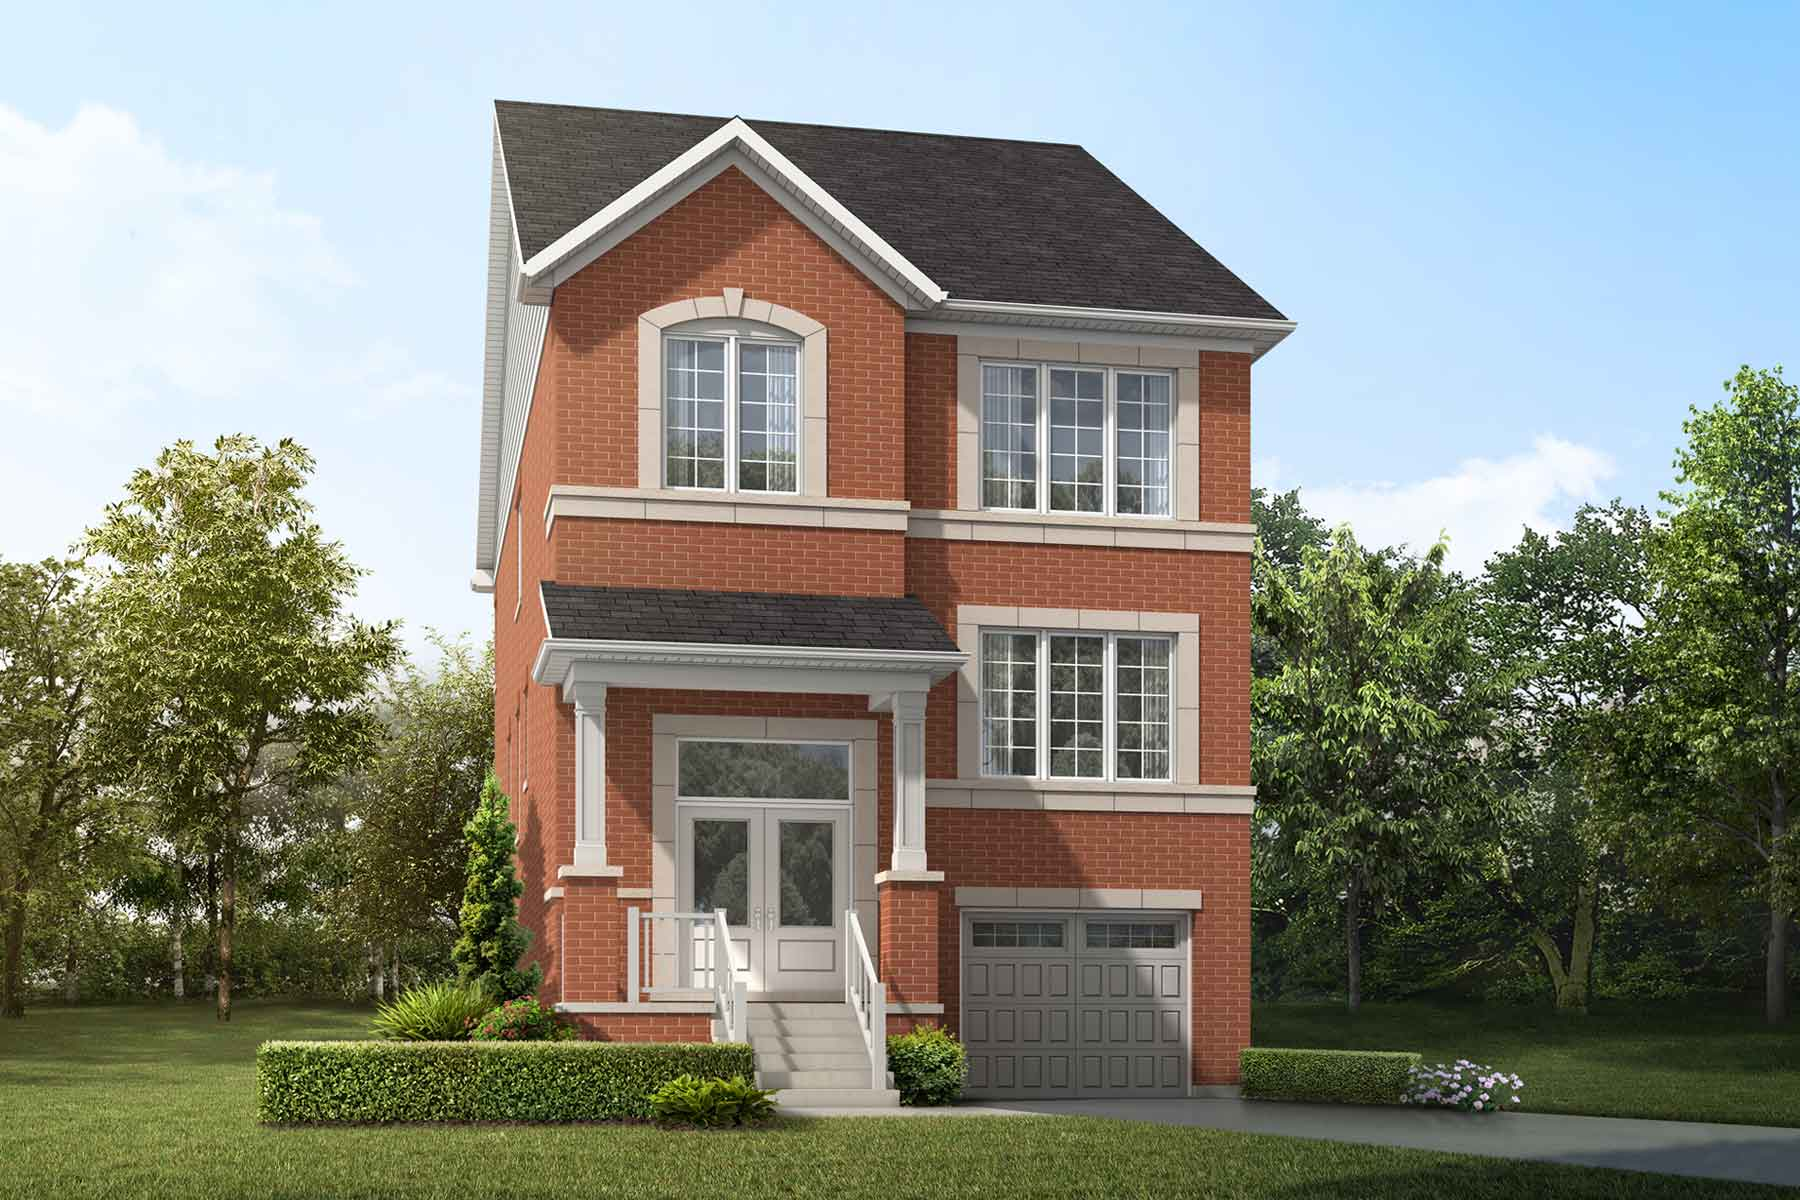 Teal Plan Elevation Front at Springwater in Markham Ontario by Mattamy Homes